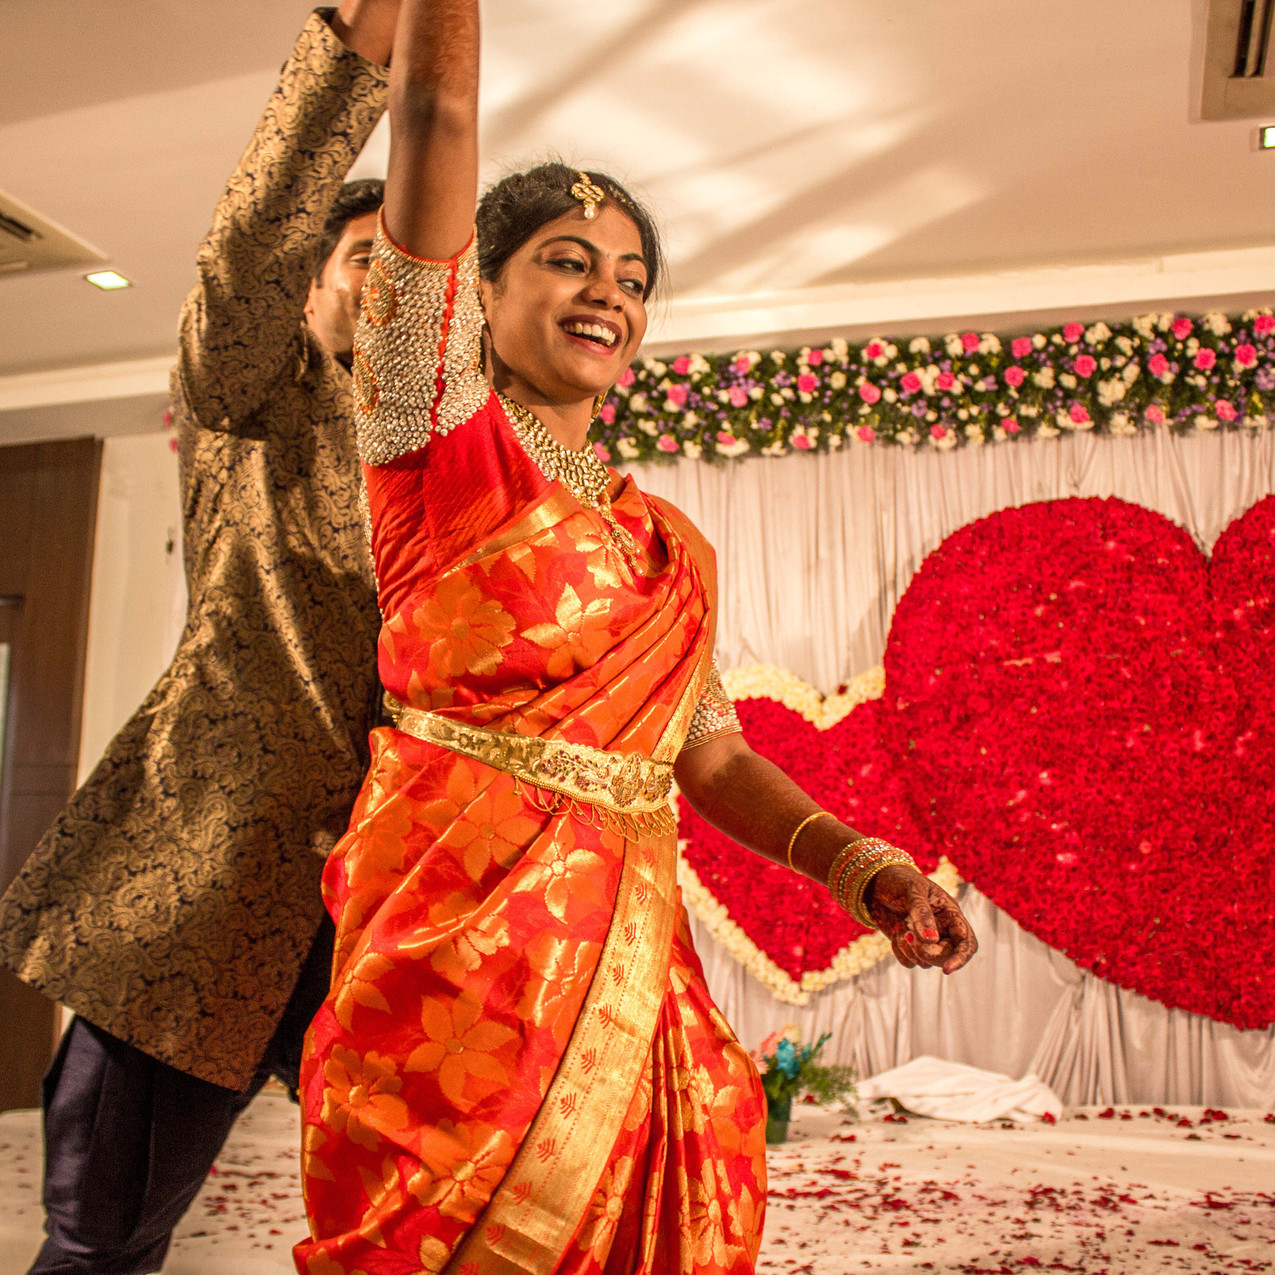 Fairytale Studios_Akshata-Sandeep Engagement_26-Dec-2016_Post Ceremony_68